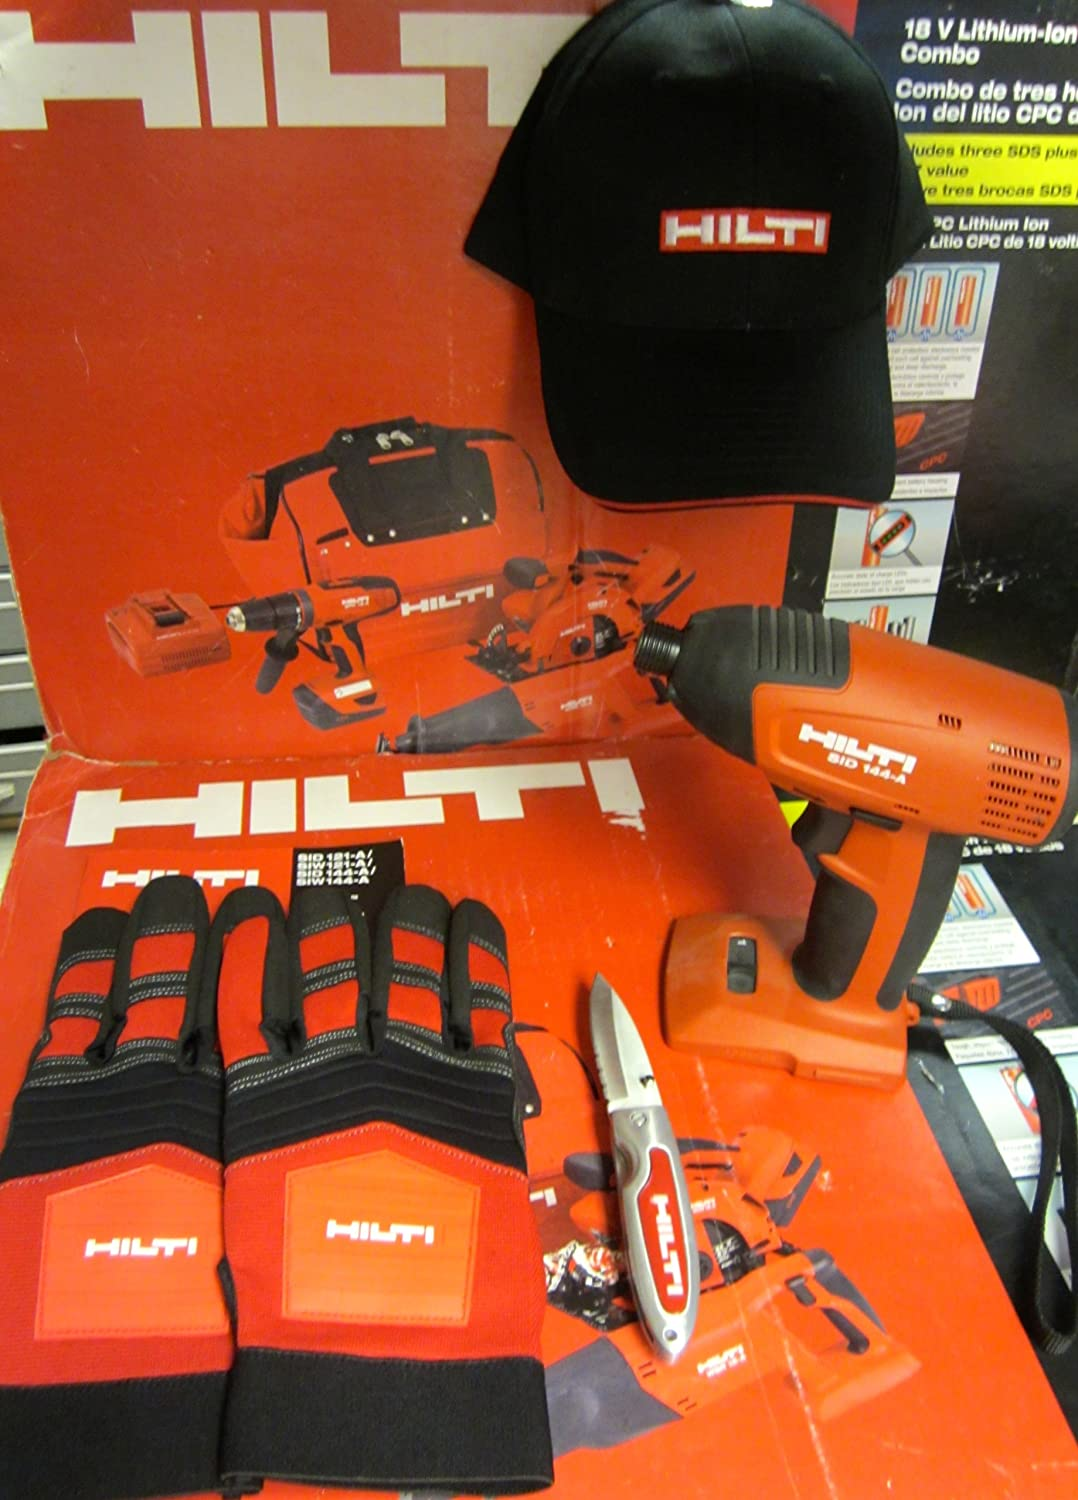 Hilti SID 144-A Cordless Impact Driver 14.4 Volt bare tool